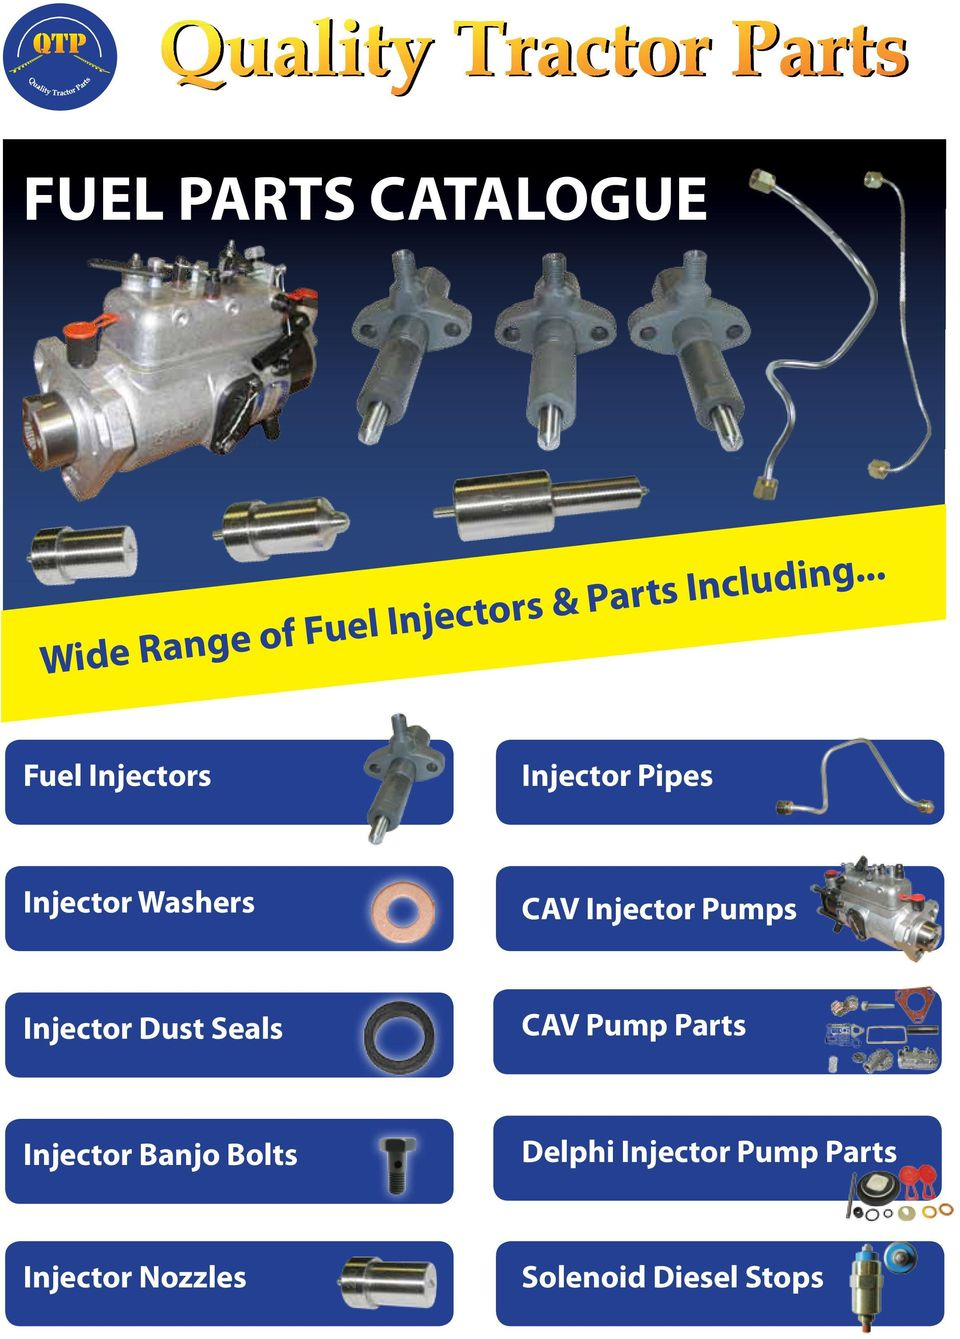 Fuel Parts Catalogue Pdf Ford 7 3 Filter Assy Injectors Injector Pipes Washers Cav